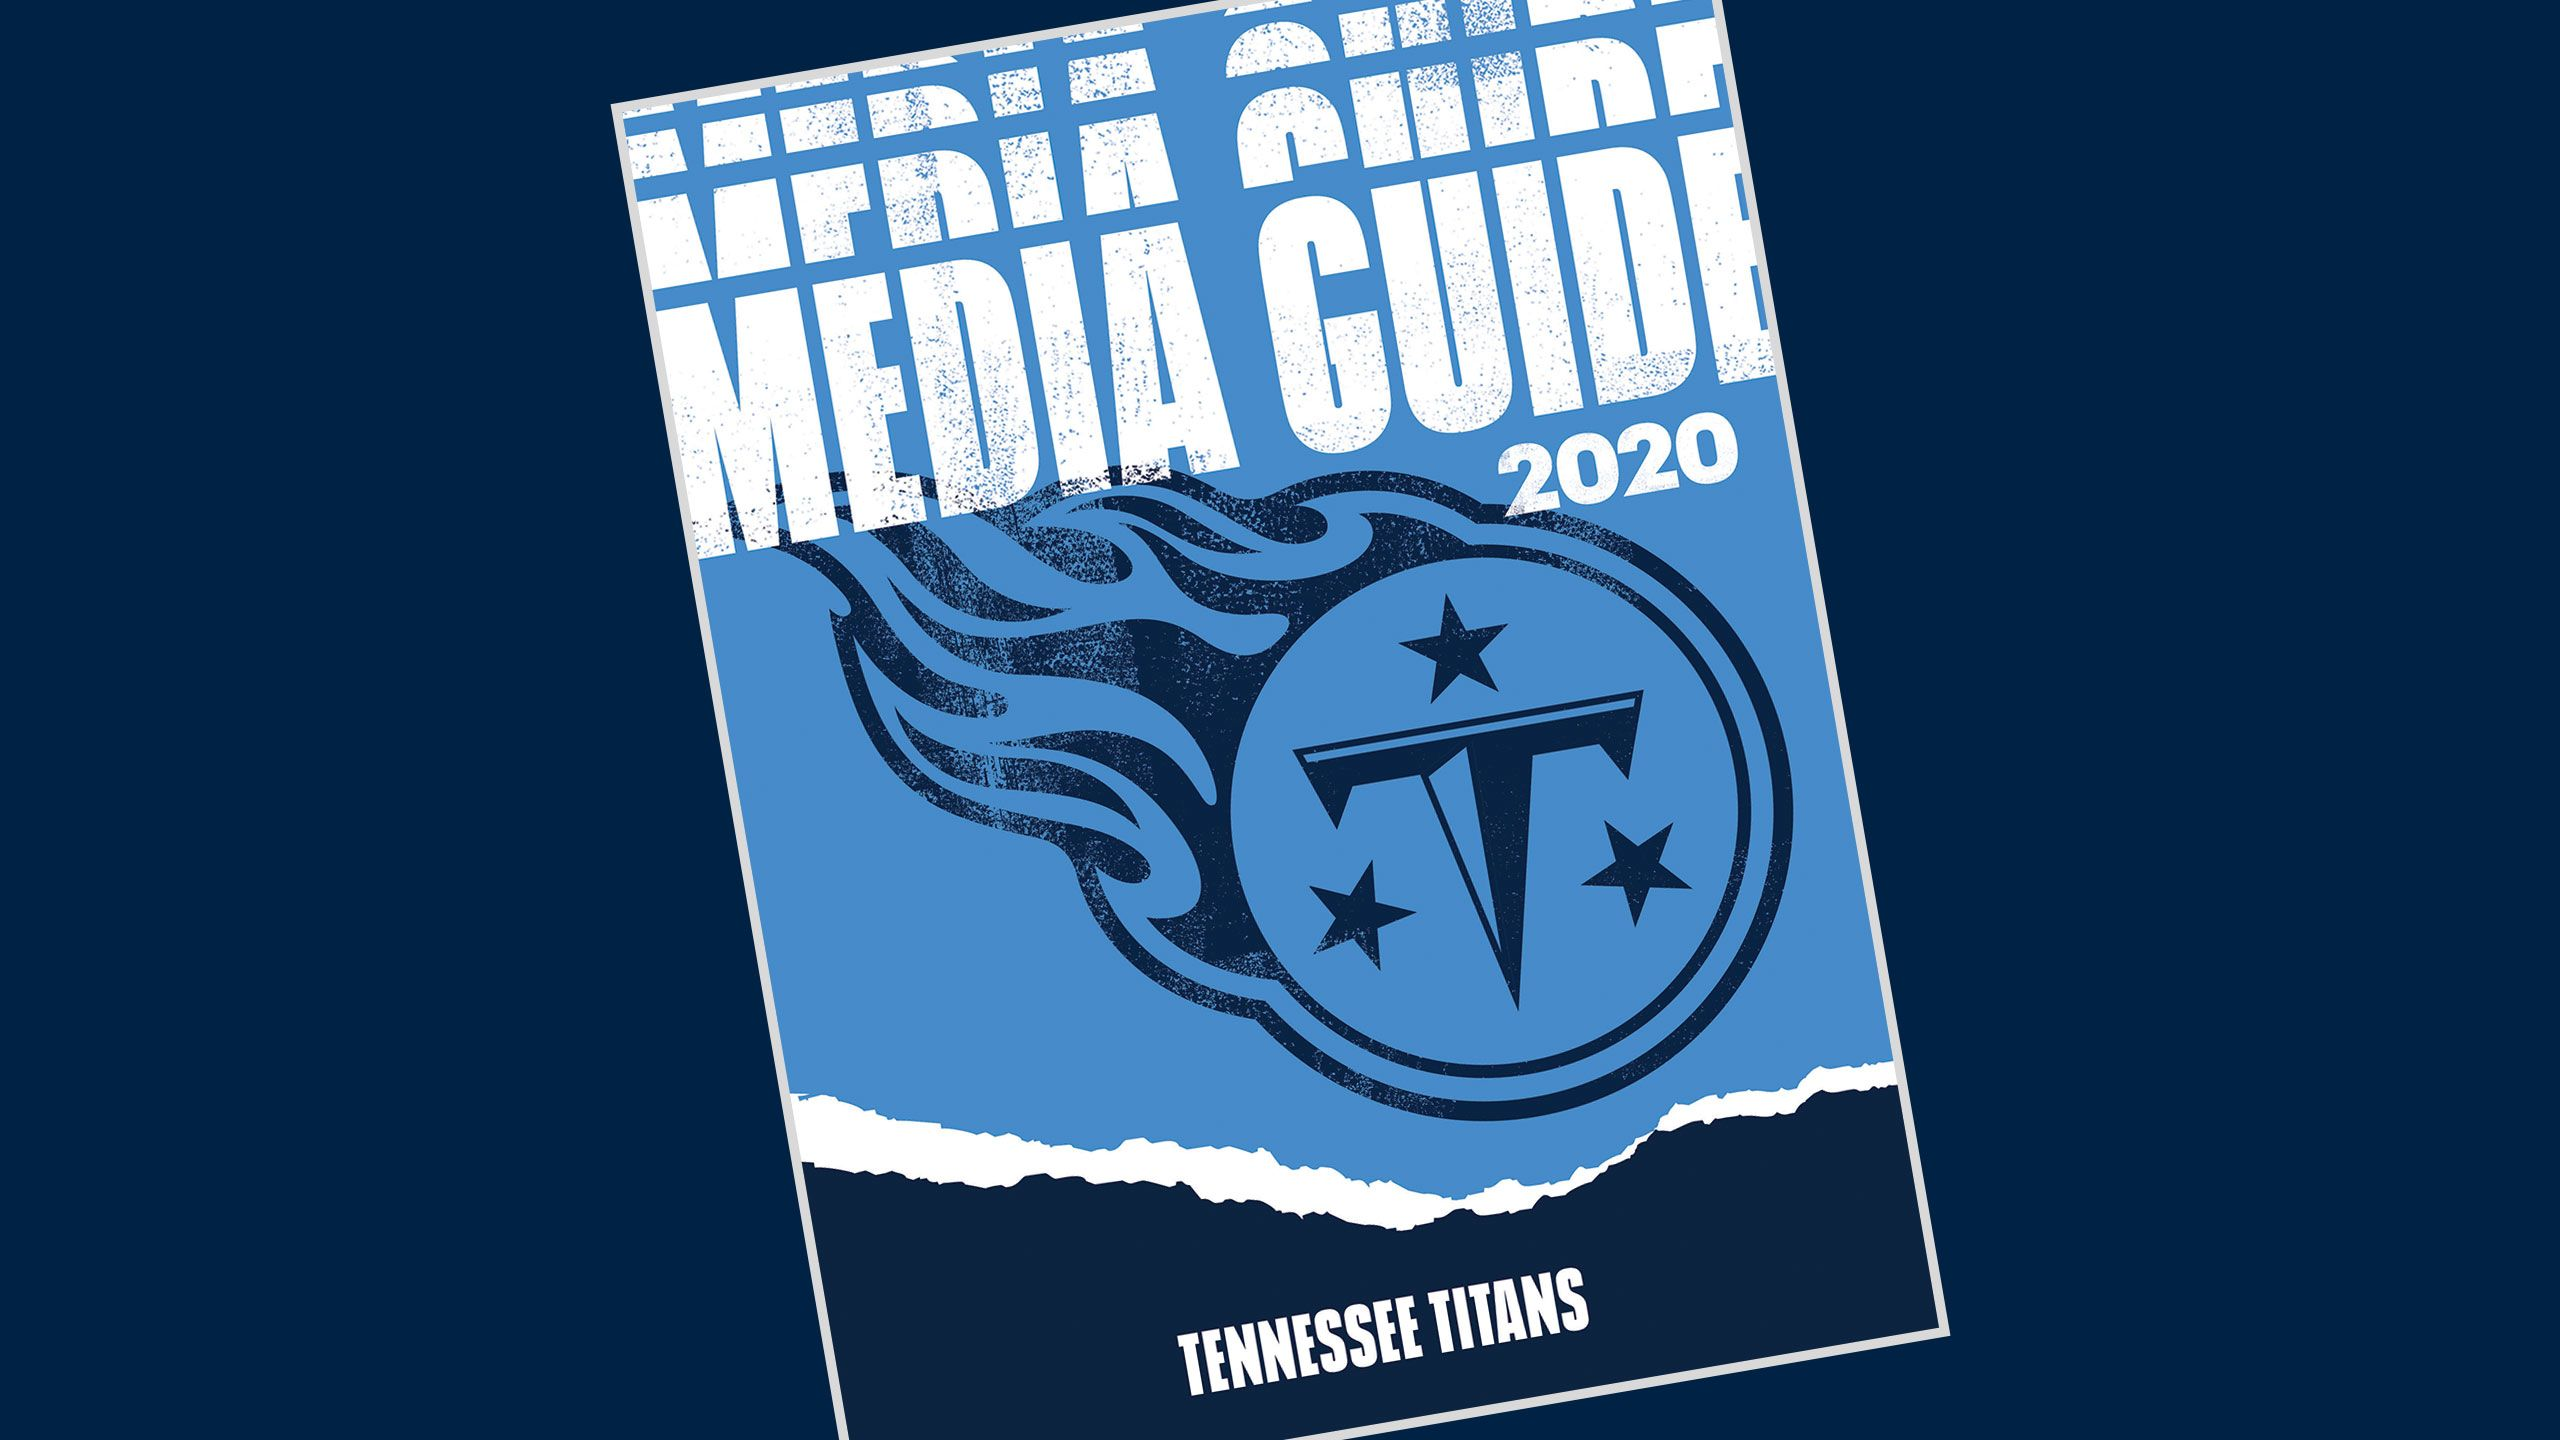 Tennessee Titans 2020 Media Guide